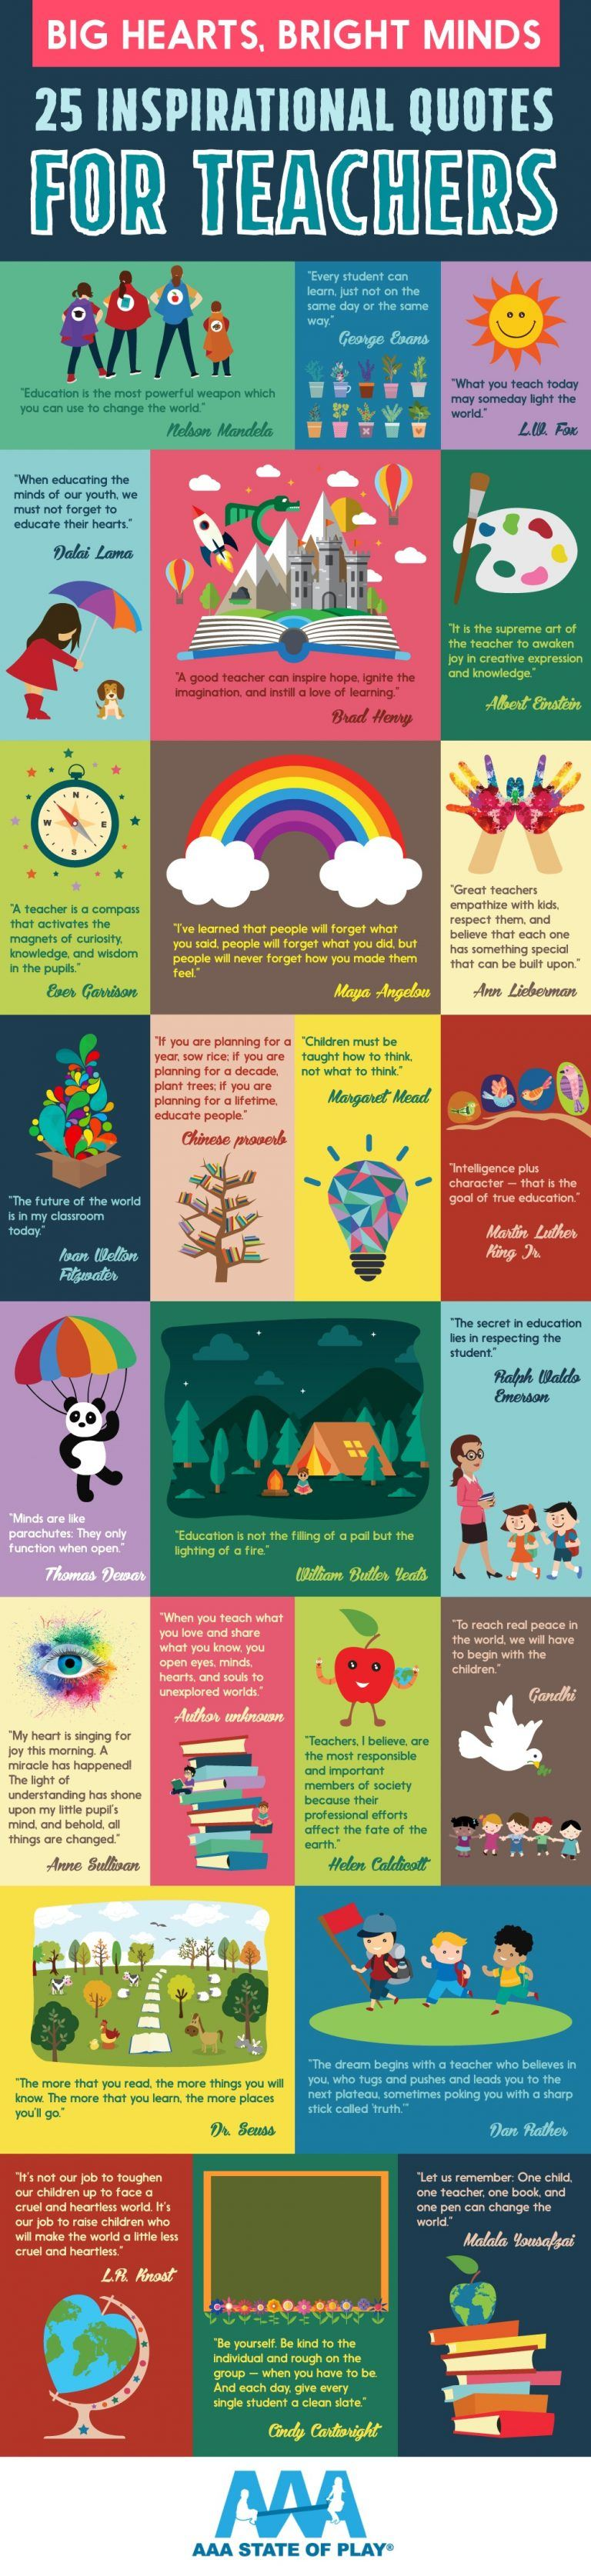 Inspirational Teaching Quotes 25 Inspirational Quotes For Teachers Infographic  Elearning